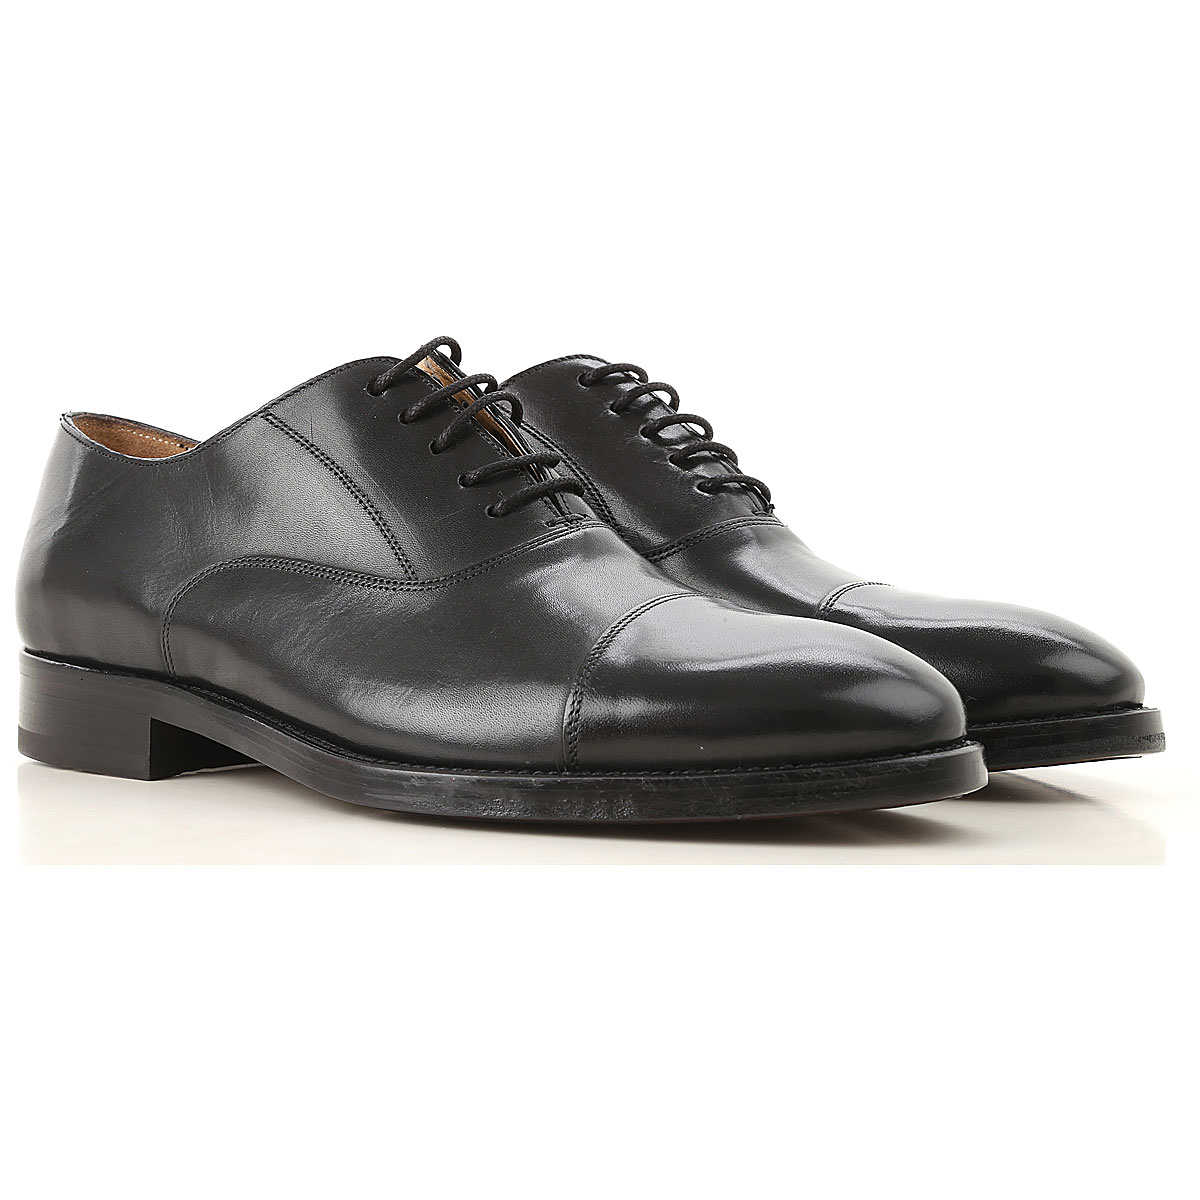 Brecos Lace Up Shoes for Men Oxfords 10 11 7.5 9 Derbies and Brogues On Sale UK - GOOFASH